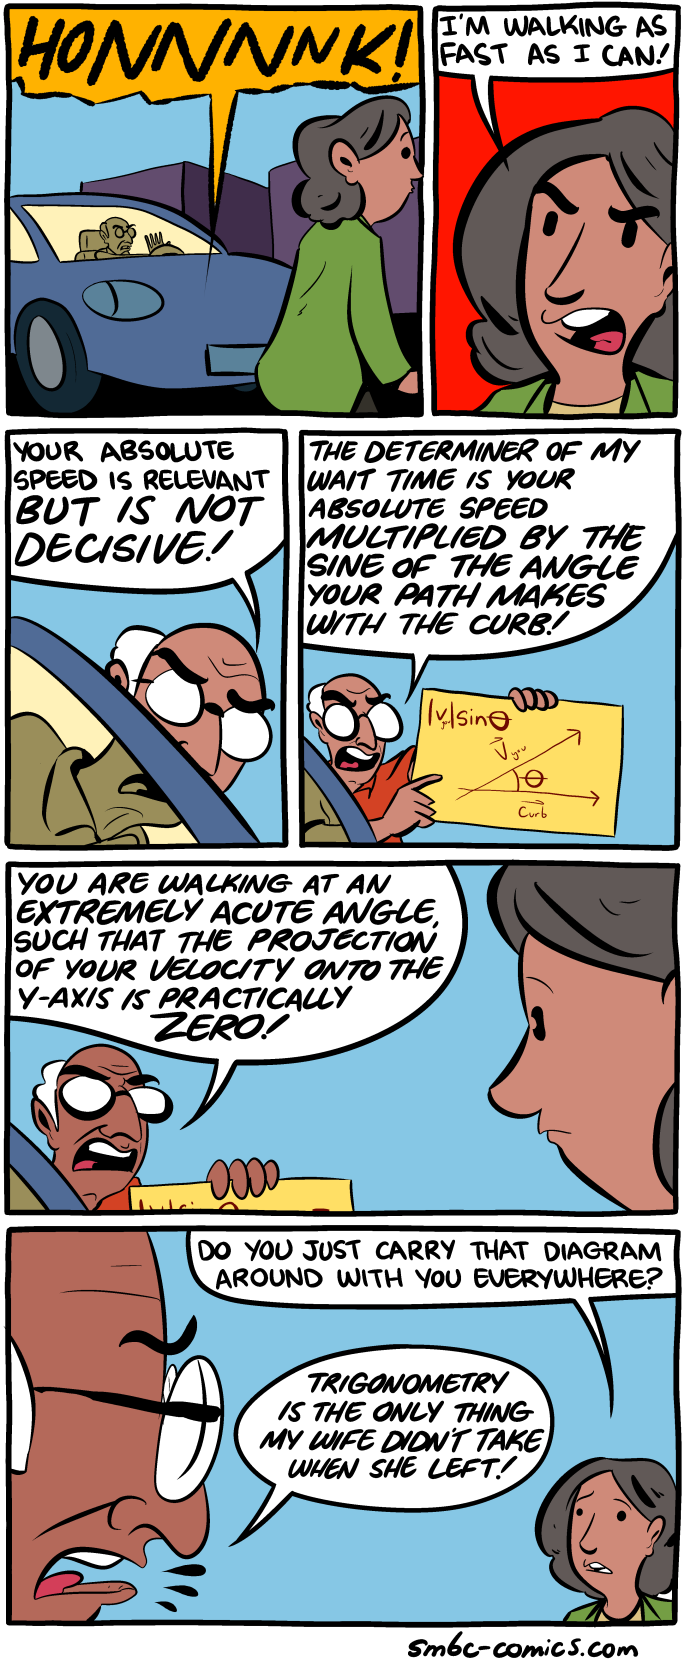 SMBC: I would be more open to your critique if it were expressed in radians.